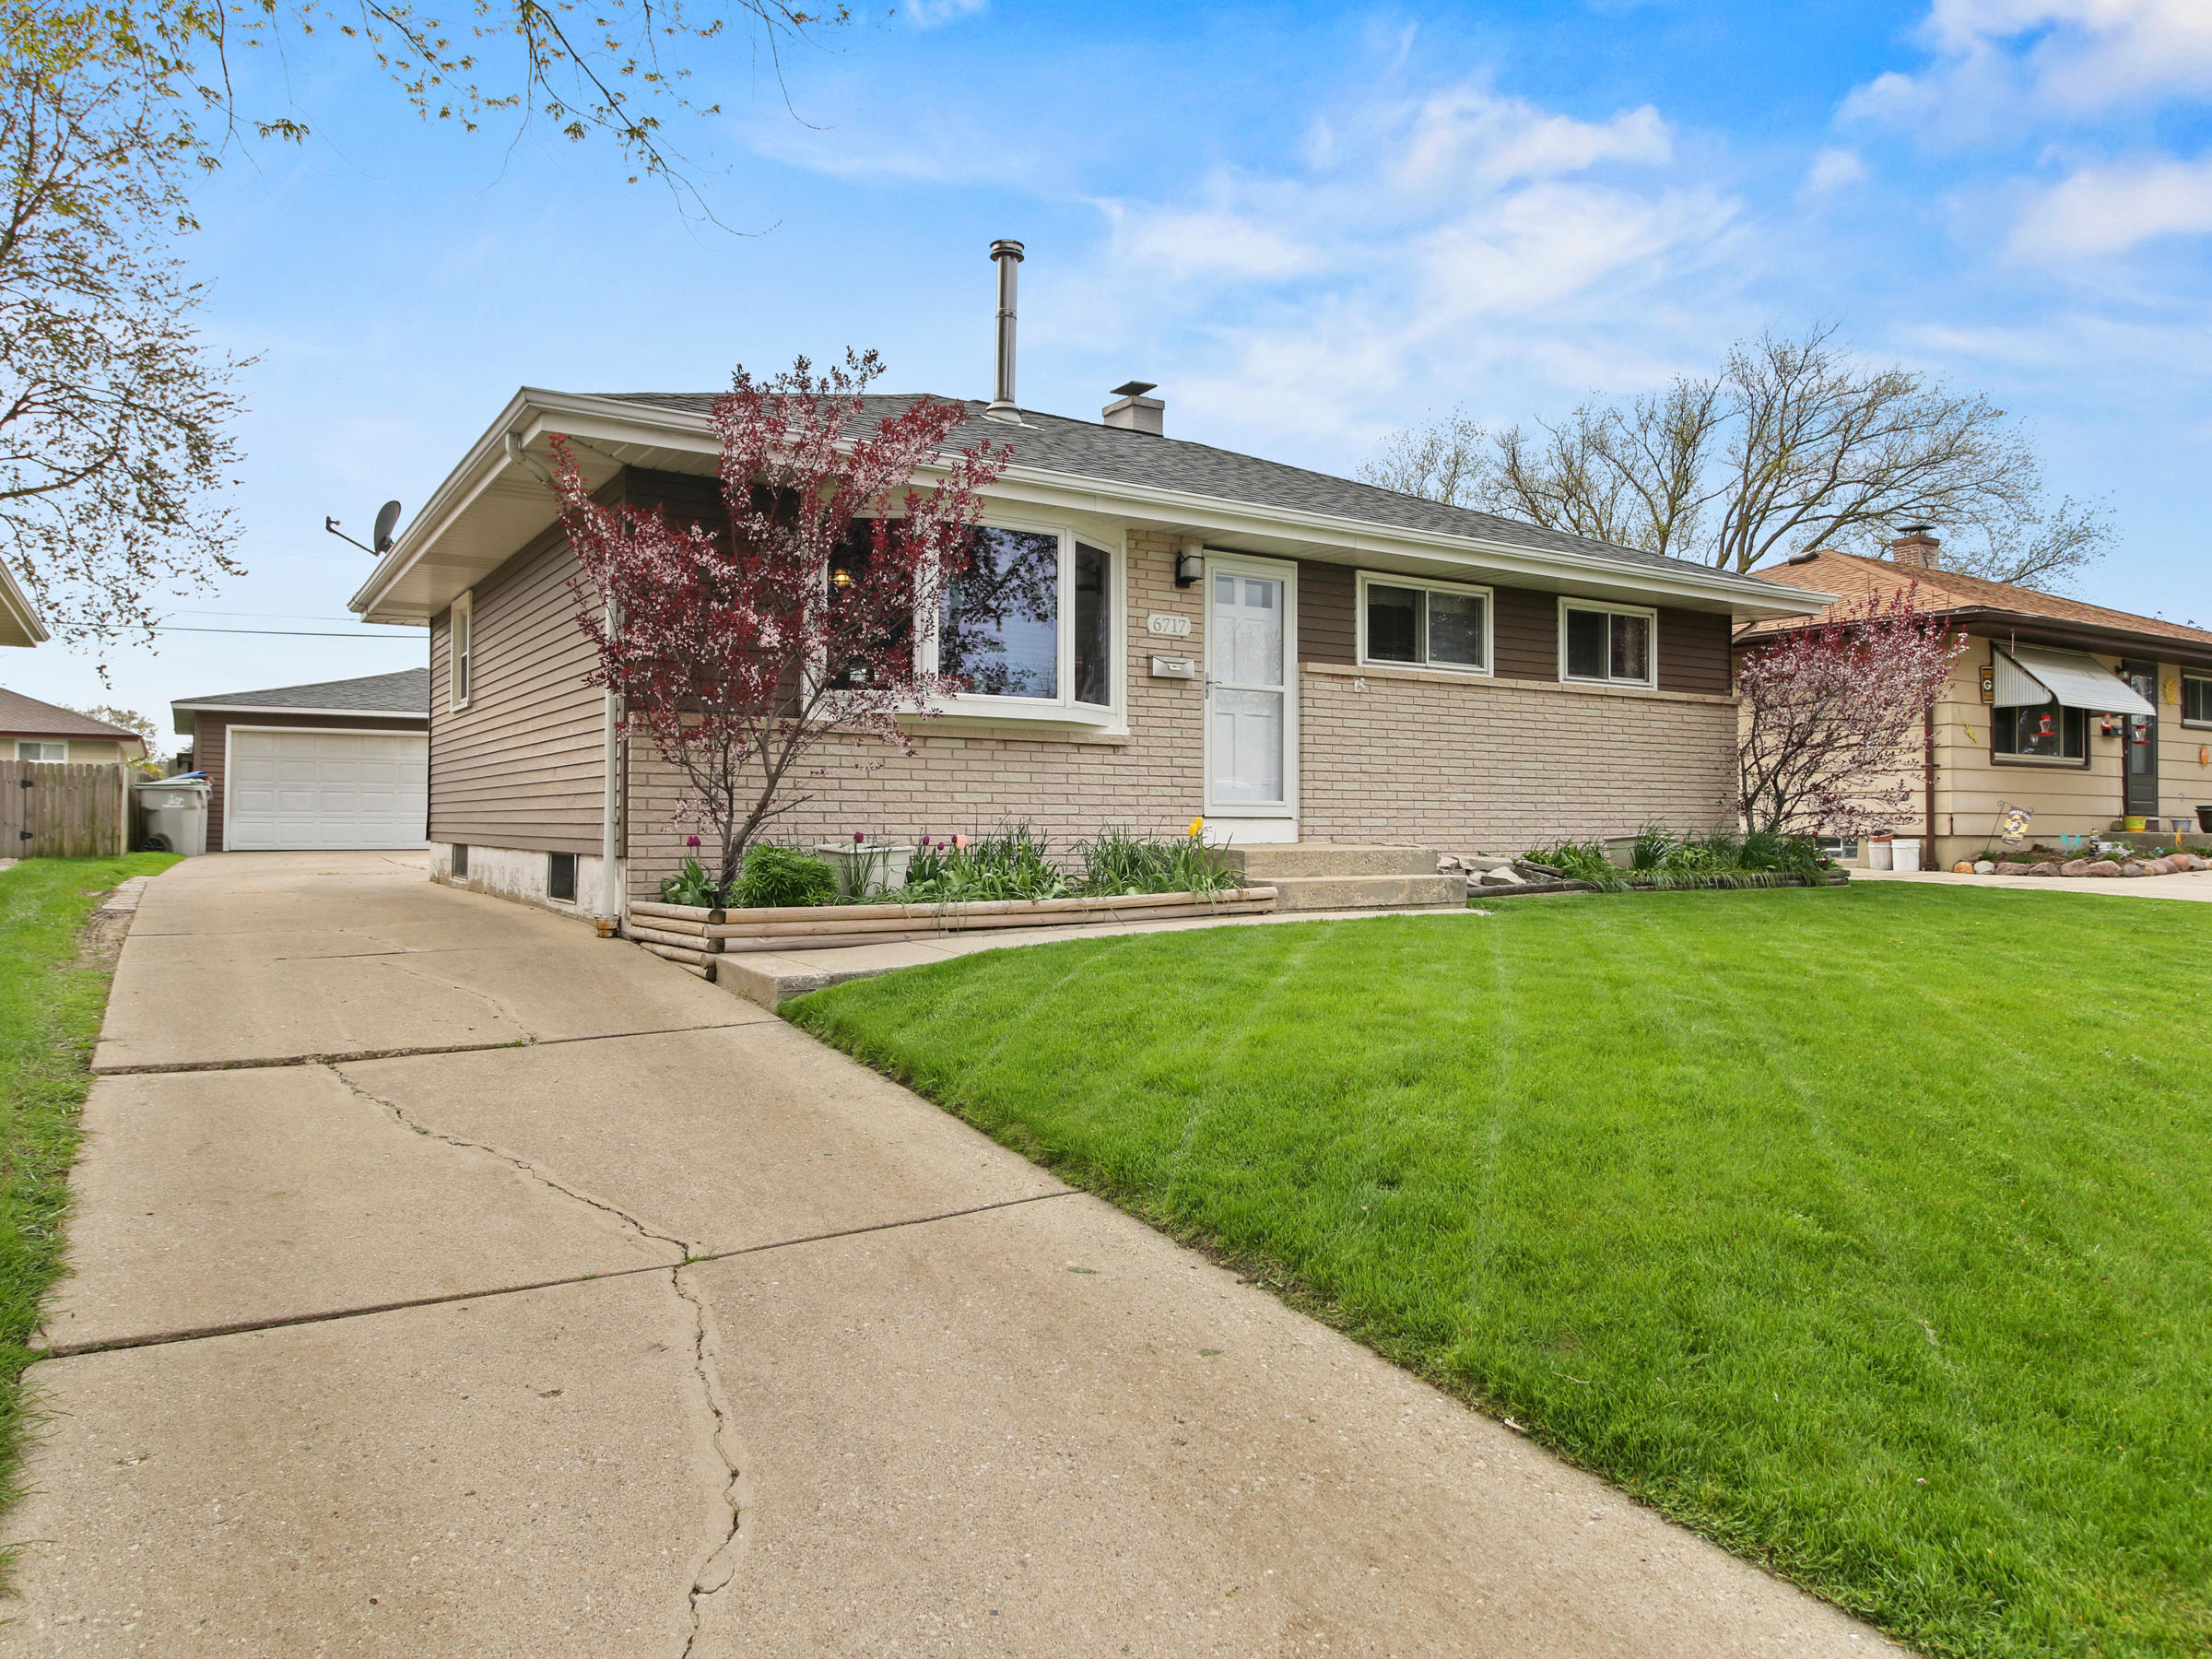 6717 17th St, Milwaukee, Wisconsin 53221, 3 Bedrooms Bedrooms, 5 Rooms Rooms,2 BathroomsBathrooms,Single-Family,For Sale,17th St,1690345